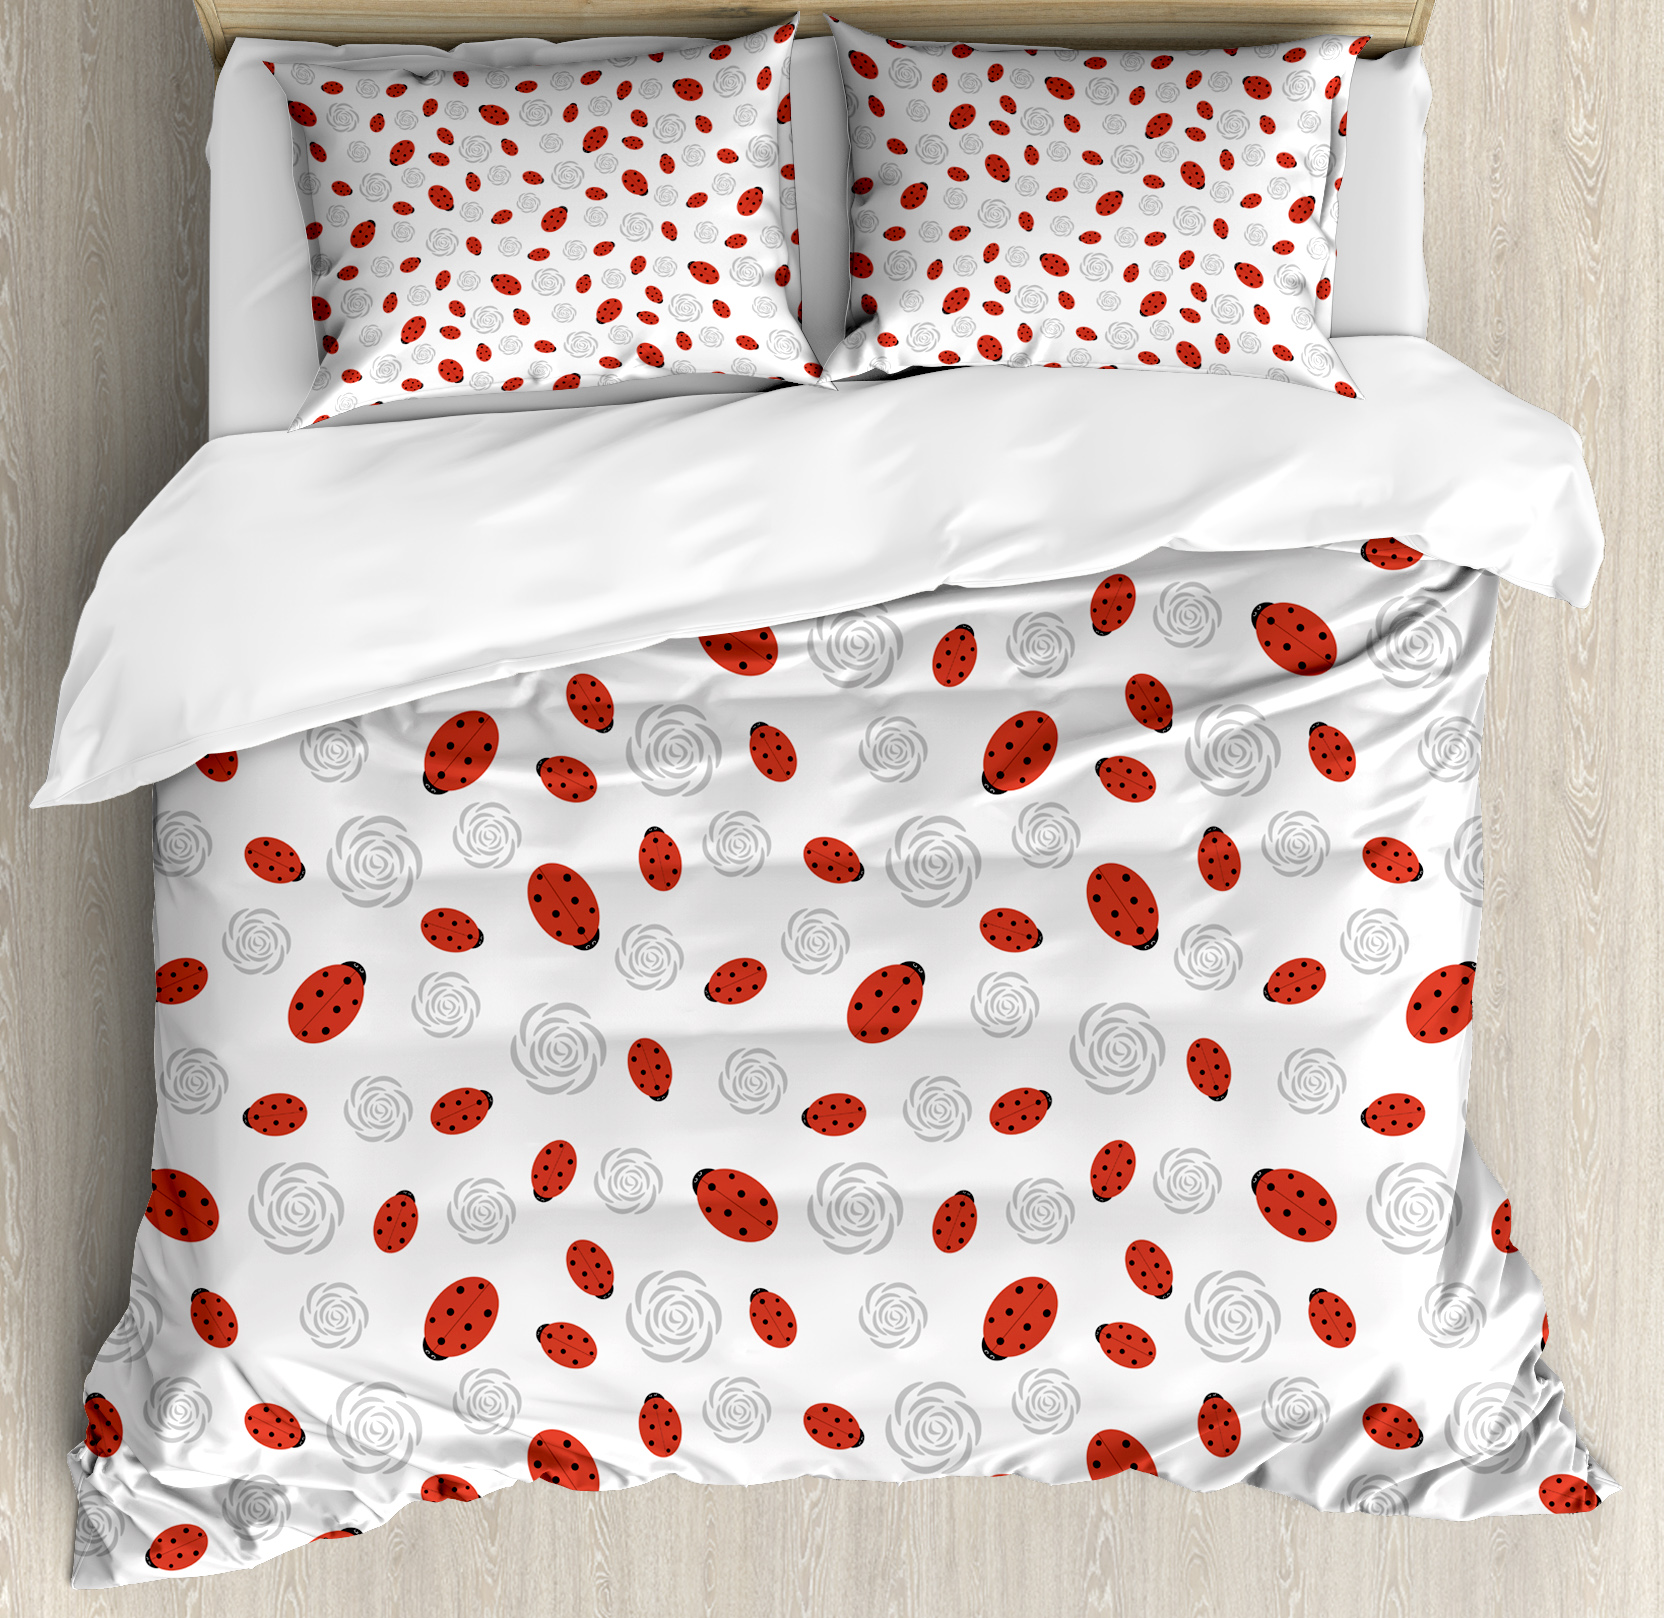 Ladybugs Duvet Cover Set, Abstract Flower Silhouettes Nature Illustration Children Cartoon Style, Decorative Bedding Set with Pillow Shams, Vermilion Black Grey, by Ambesonne